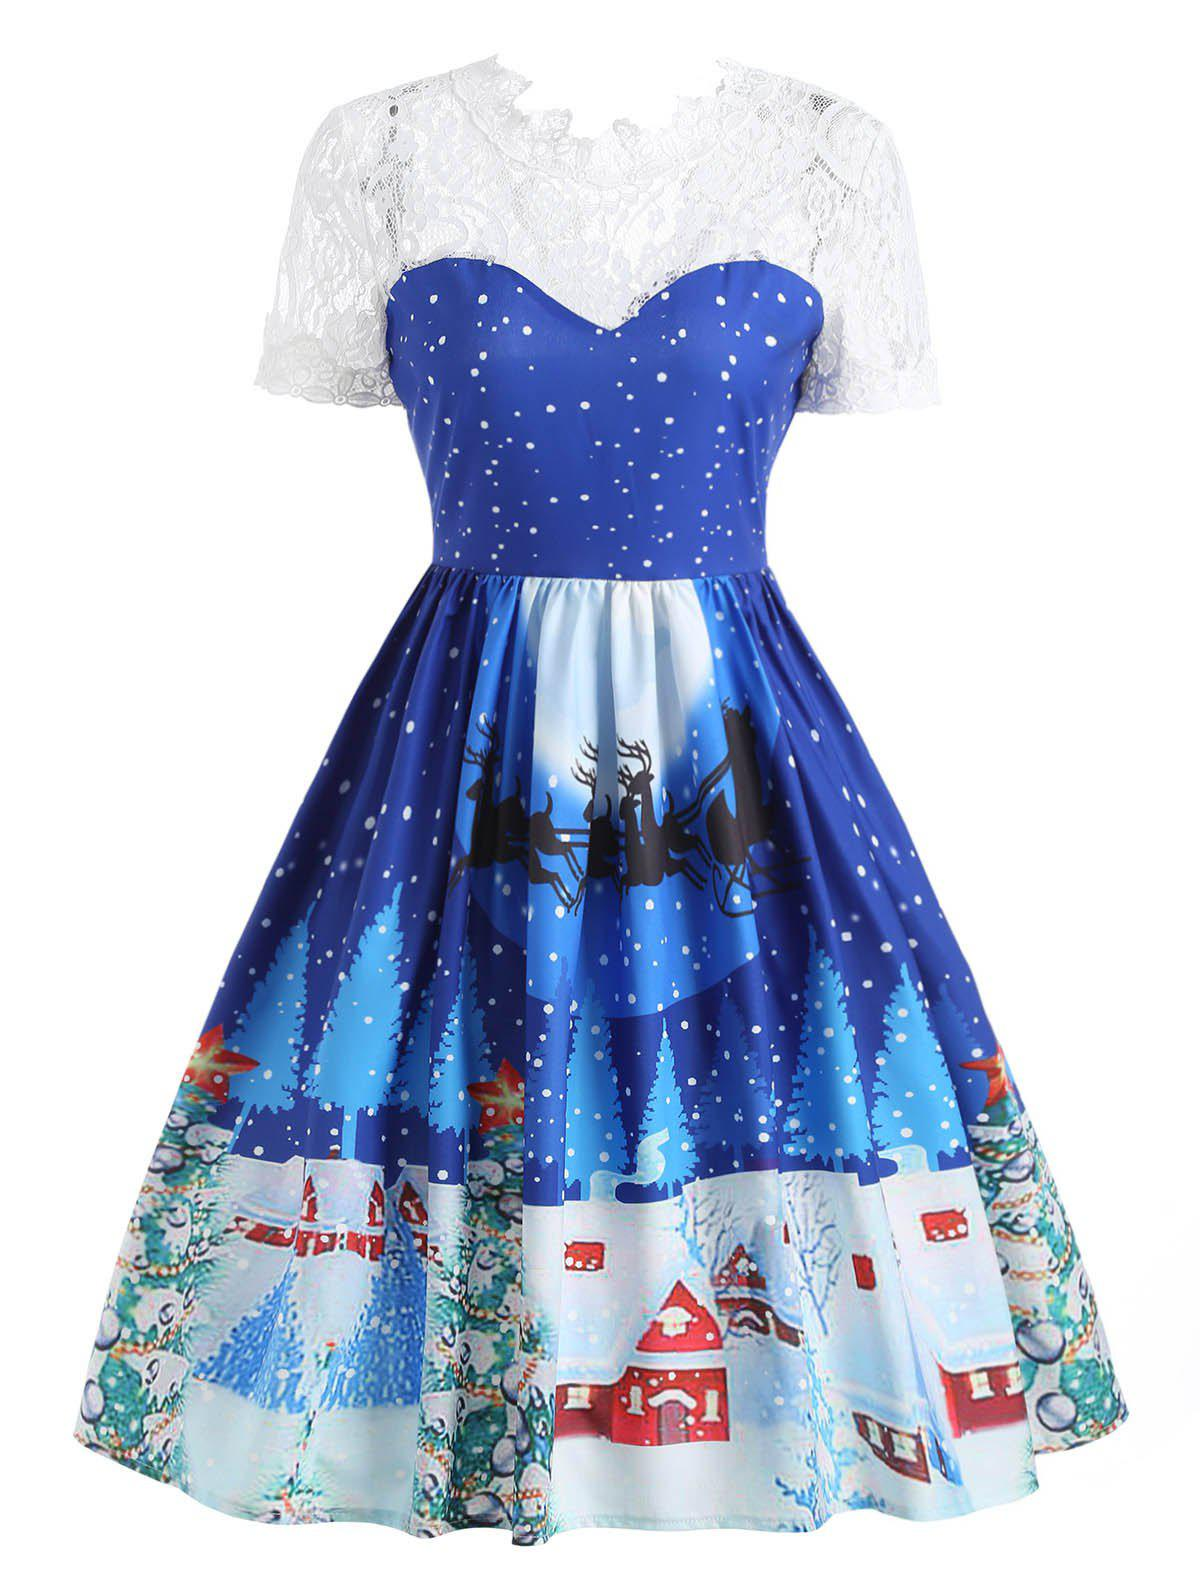 Christmas Print Lace Panel 50s Swing DressWOMEN<br><br>Size: M; Color: BLUE; Style: Cute; Material: Polyester; Silhouette: A-Line; Dress Type: Swing Dress; Dresses Length: Knee-Length; Neckline: Ruffled; Sleeve Length: Short Sleeves; Embellishment: Lace,Panel; Pattern Type: Print; With Belt: No; Season: Fall,Spring,Summer,Winter; Weight: 0.3200kg; Package Contents: 1 x Dress;